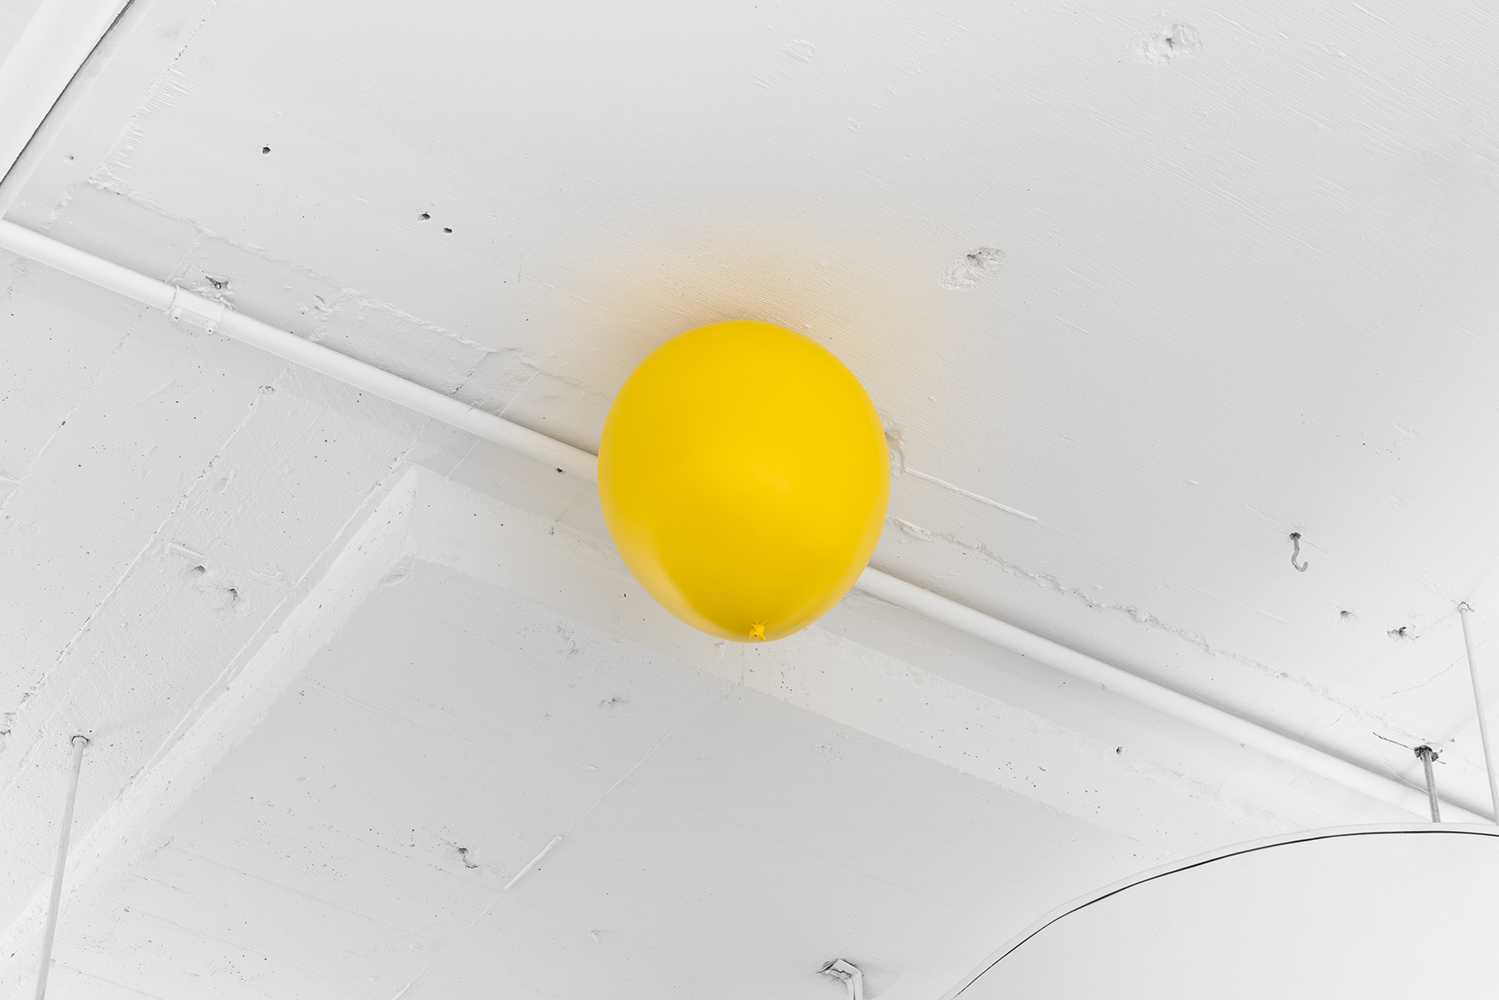 "Roula Partheniou,  Unethered (balloon), Sunrise,  2019, resin, foam, automotive paint, 33 x 25 x 25 cm (13"" x 10"" x 10""), courtesy MKG127 Gallery"